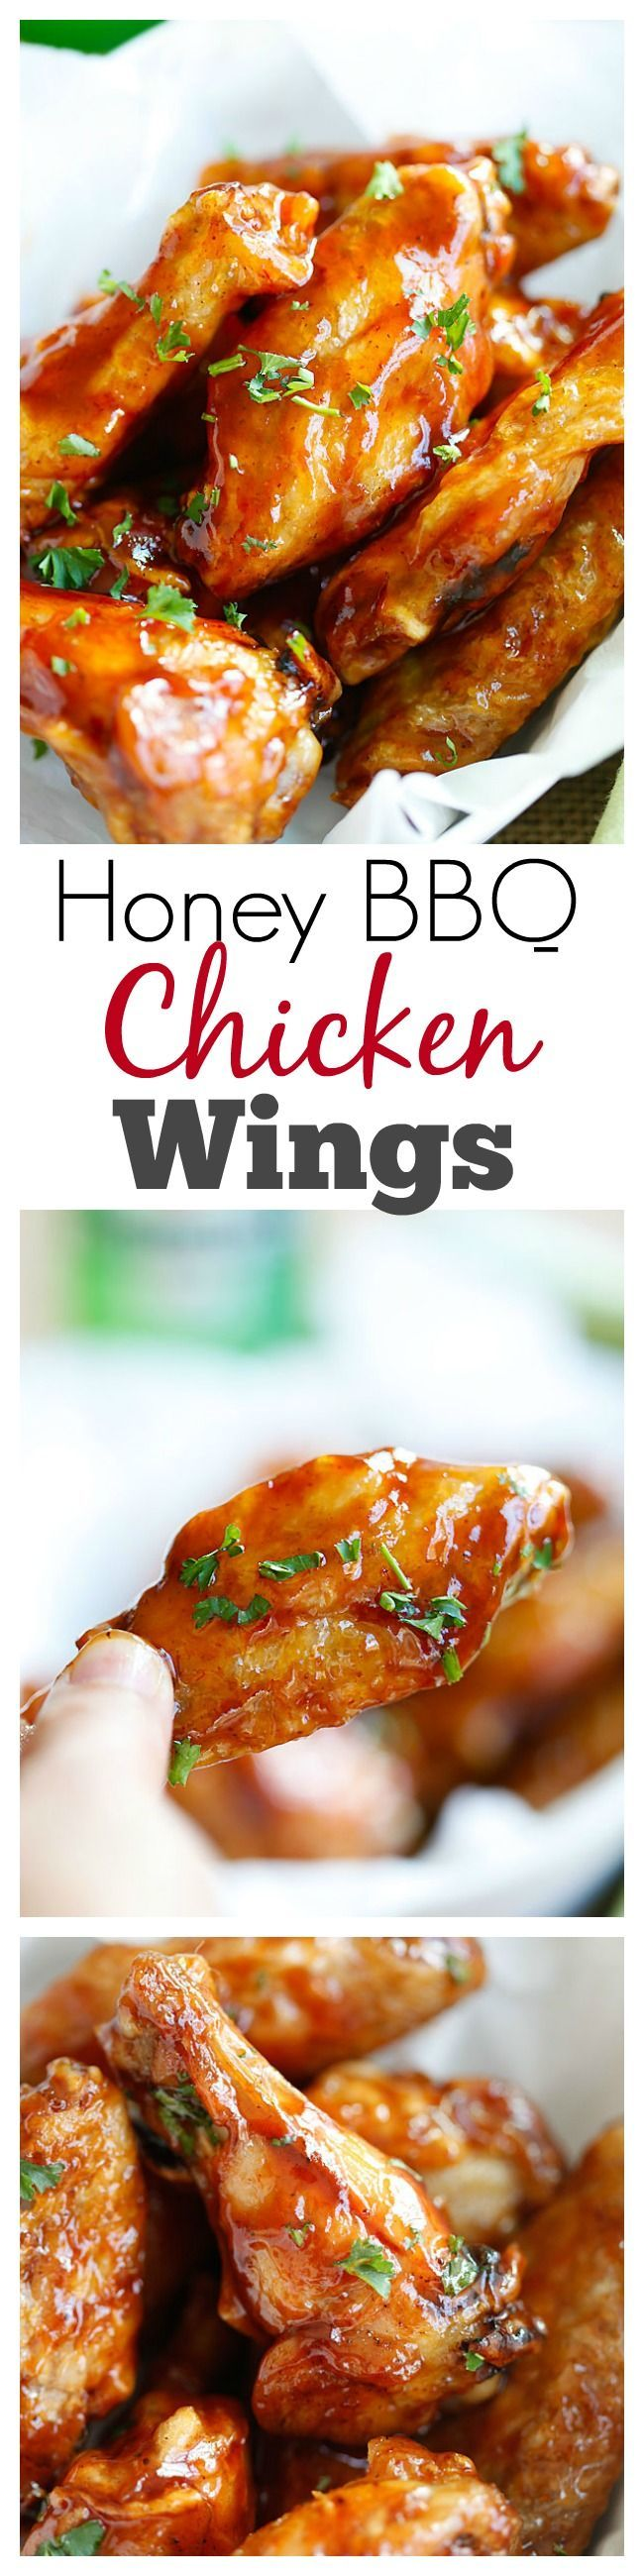 Honey BBQ Chicken Wings – 3 ingredients, no deep-frying, the easiest and crispiest chicken wings ever with sweet honey bbq sauce | rasamalaysia.com #wings